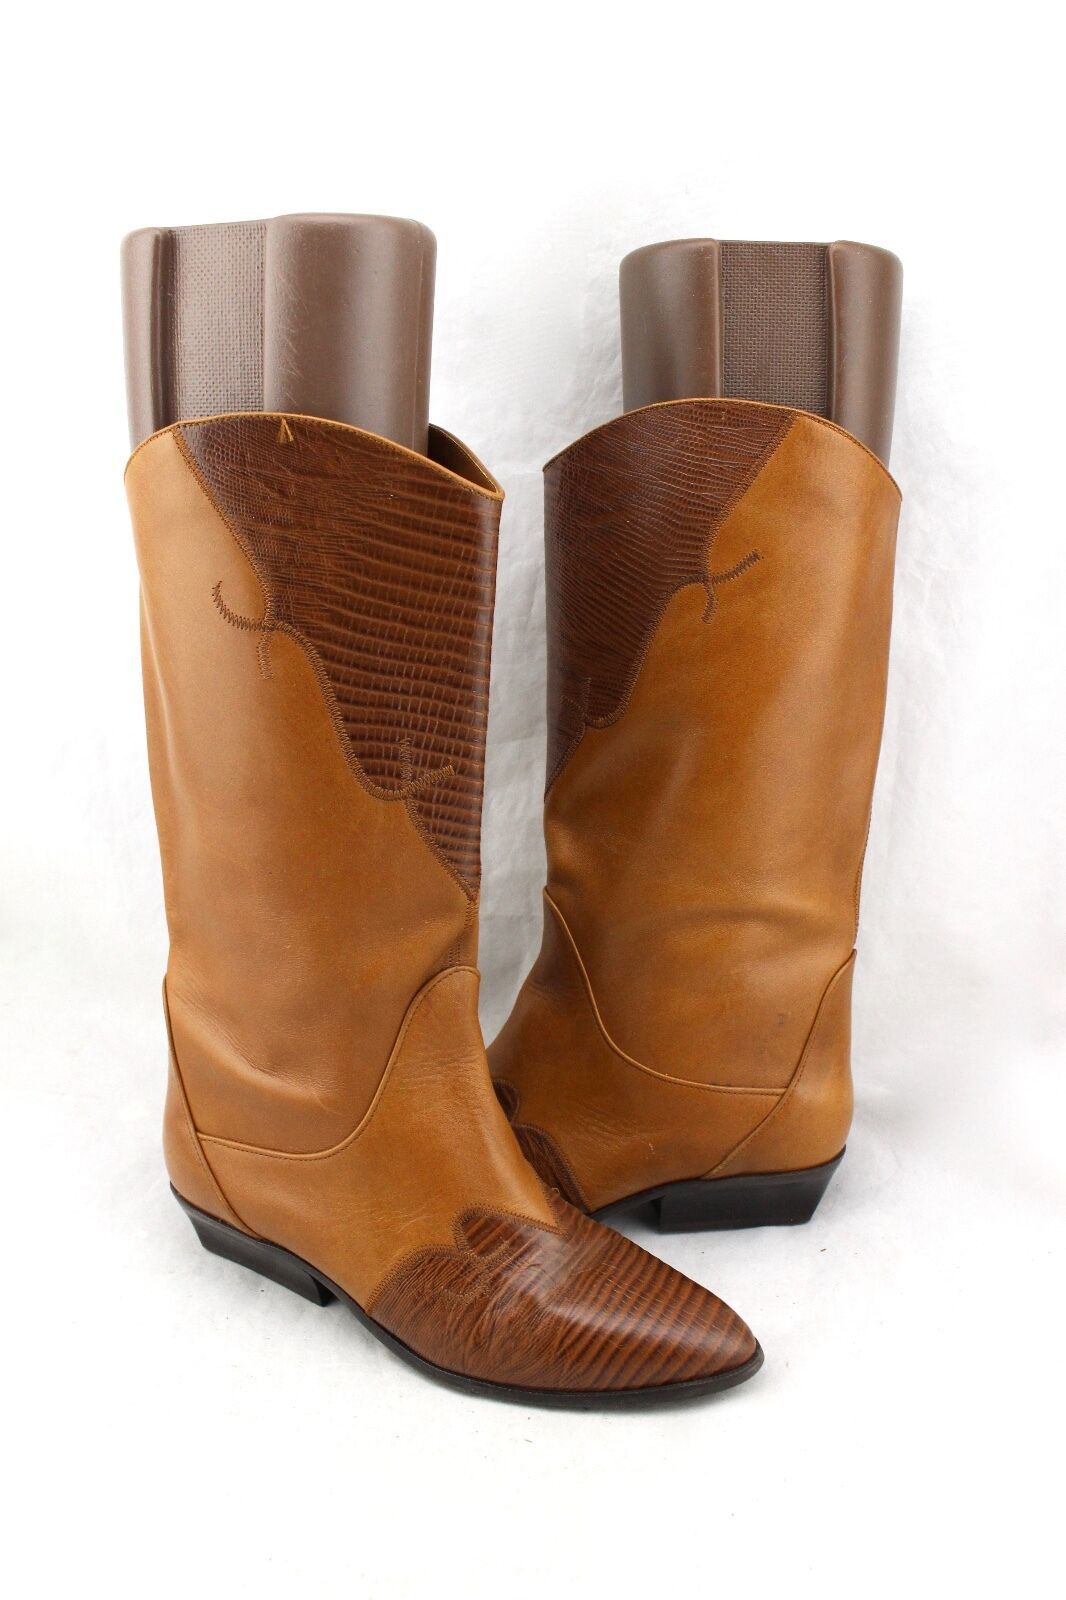 NINE WEST Vintage Camel Tan Lizard Embossed Leather Cowboy Western Stiefel 7.5